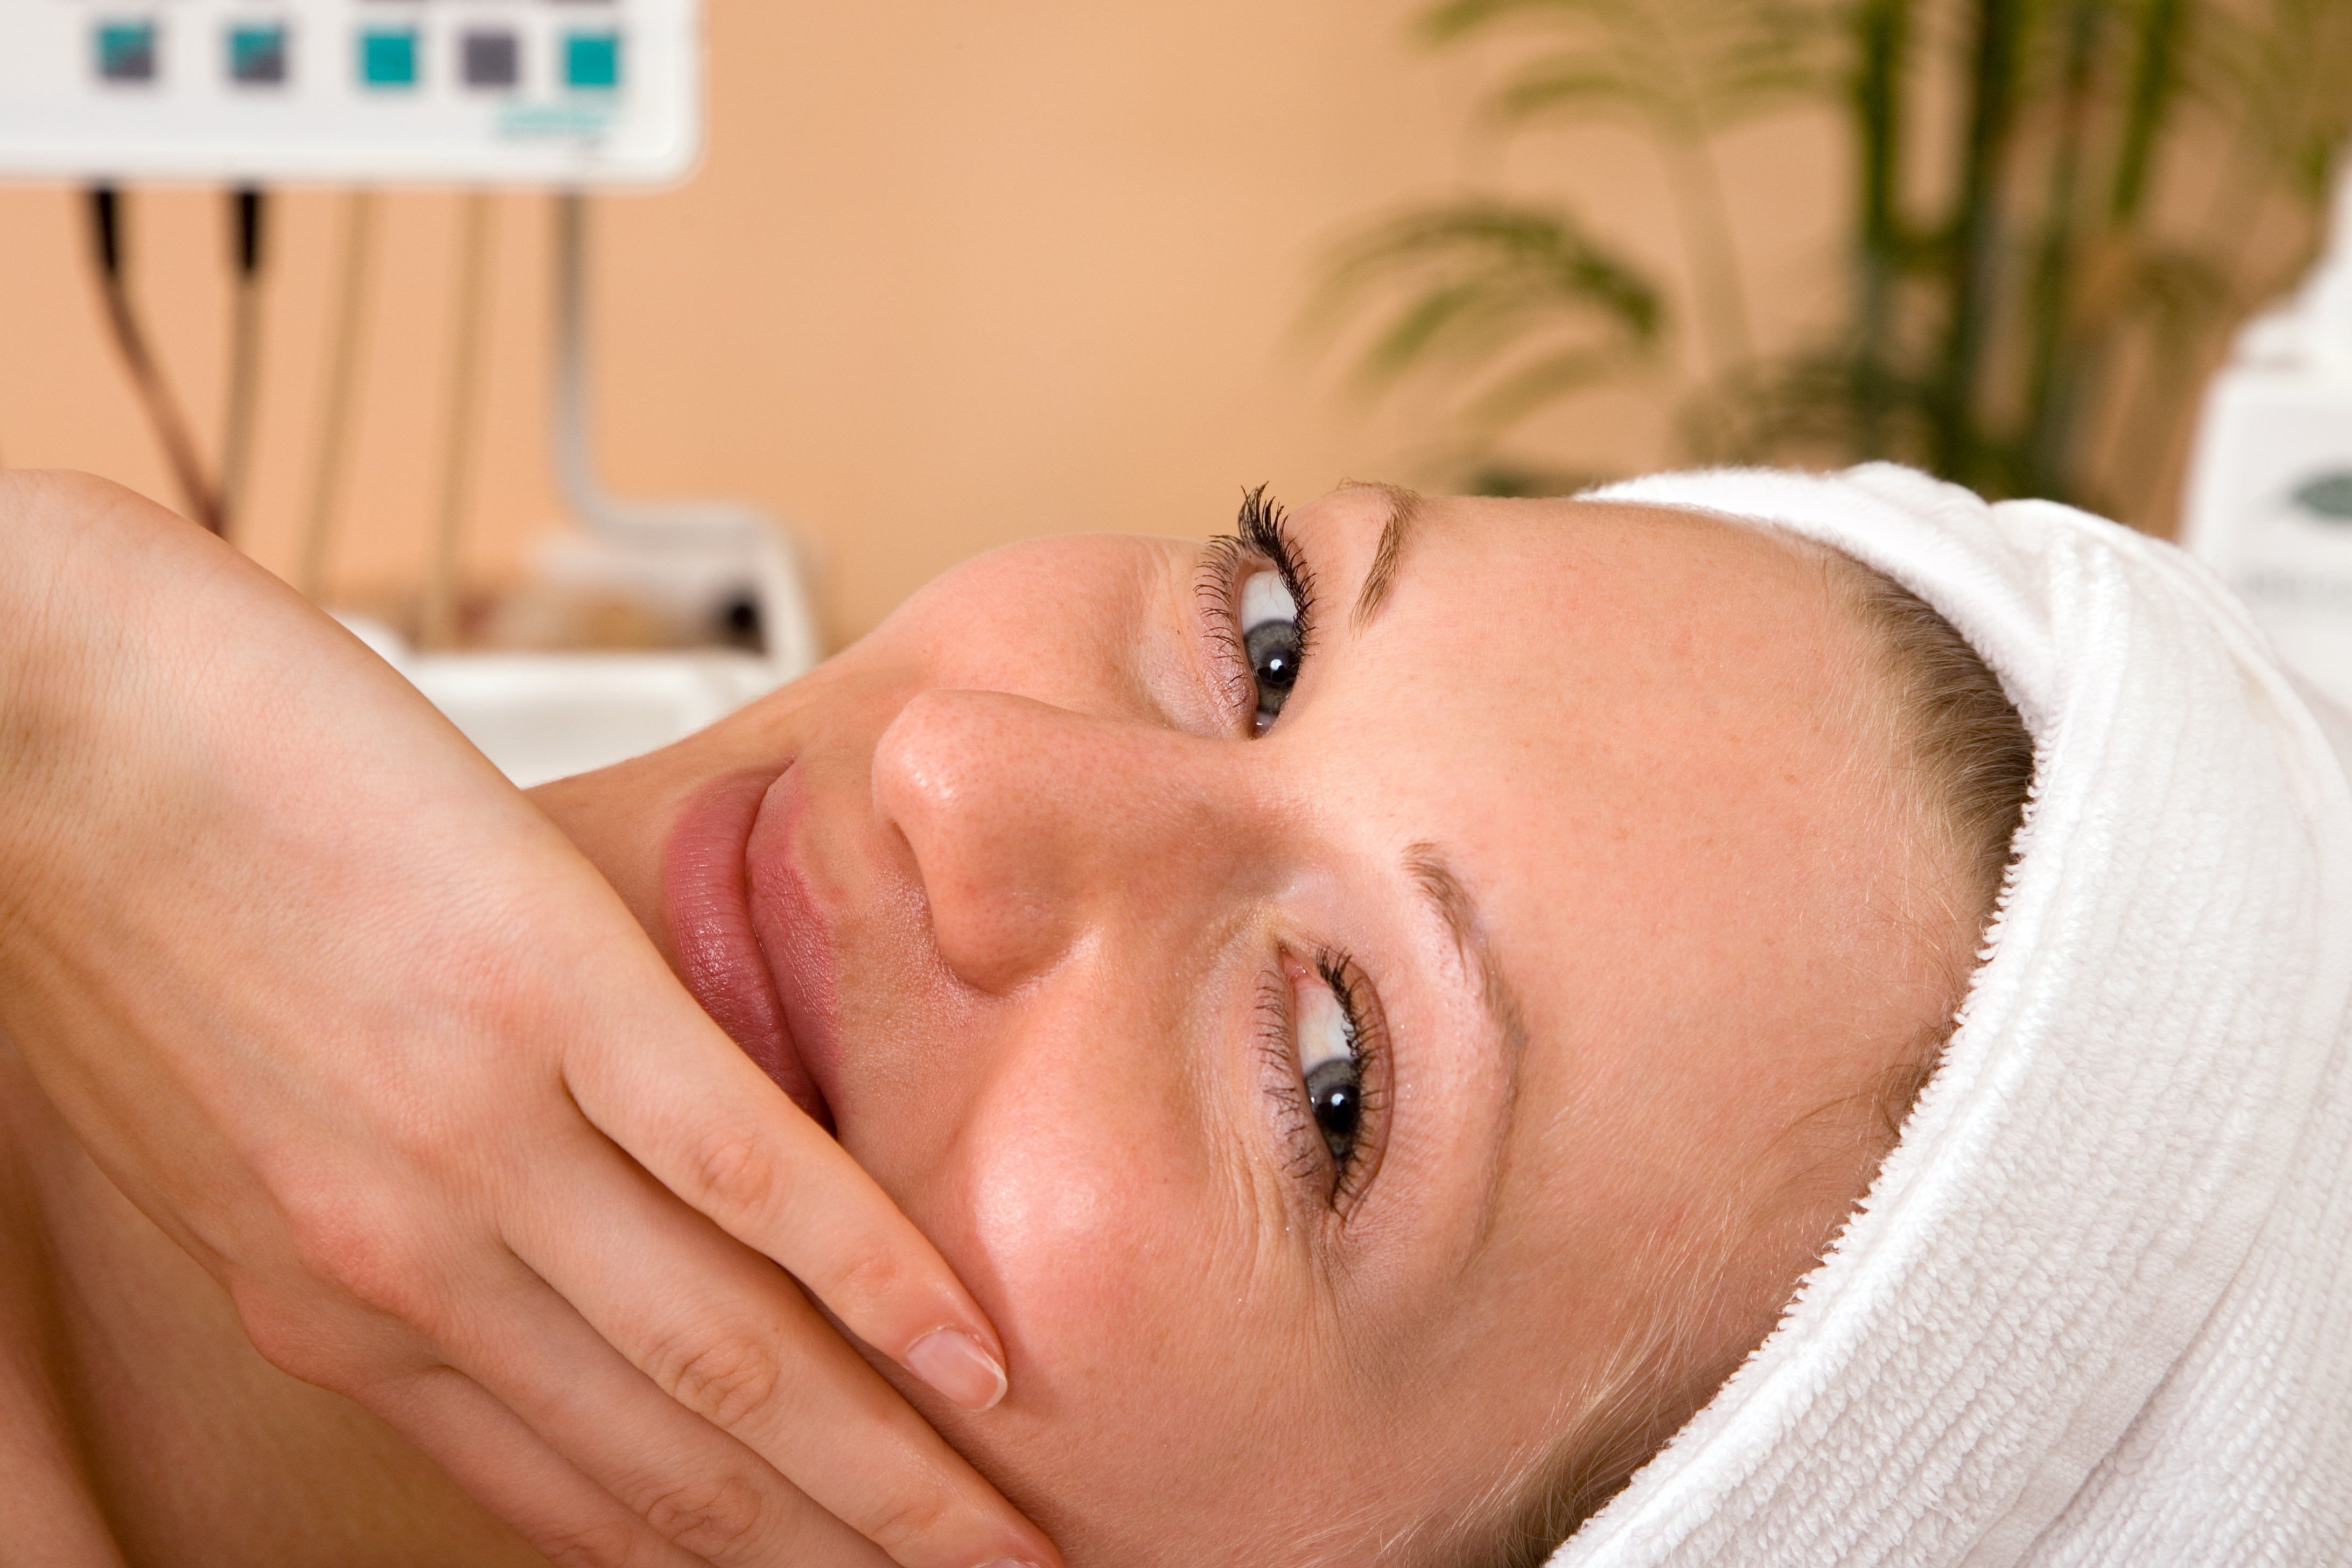 Glycolic Acid - What's it good for?